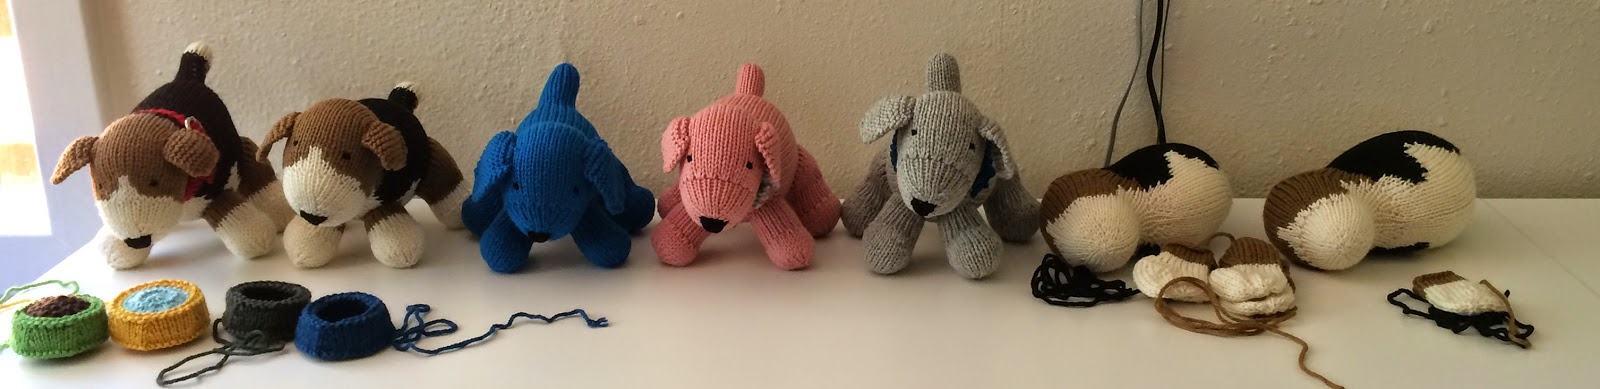 knit dog toy stuffed food water dishes pattern